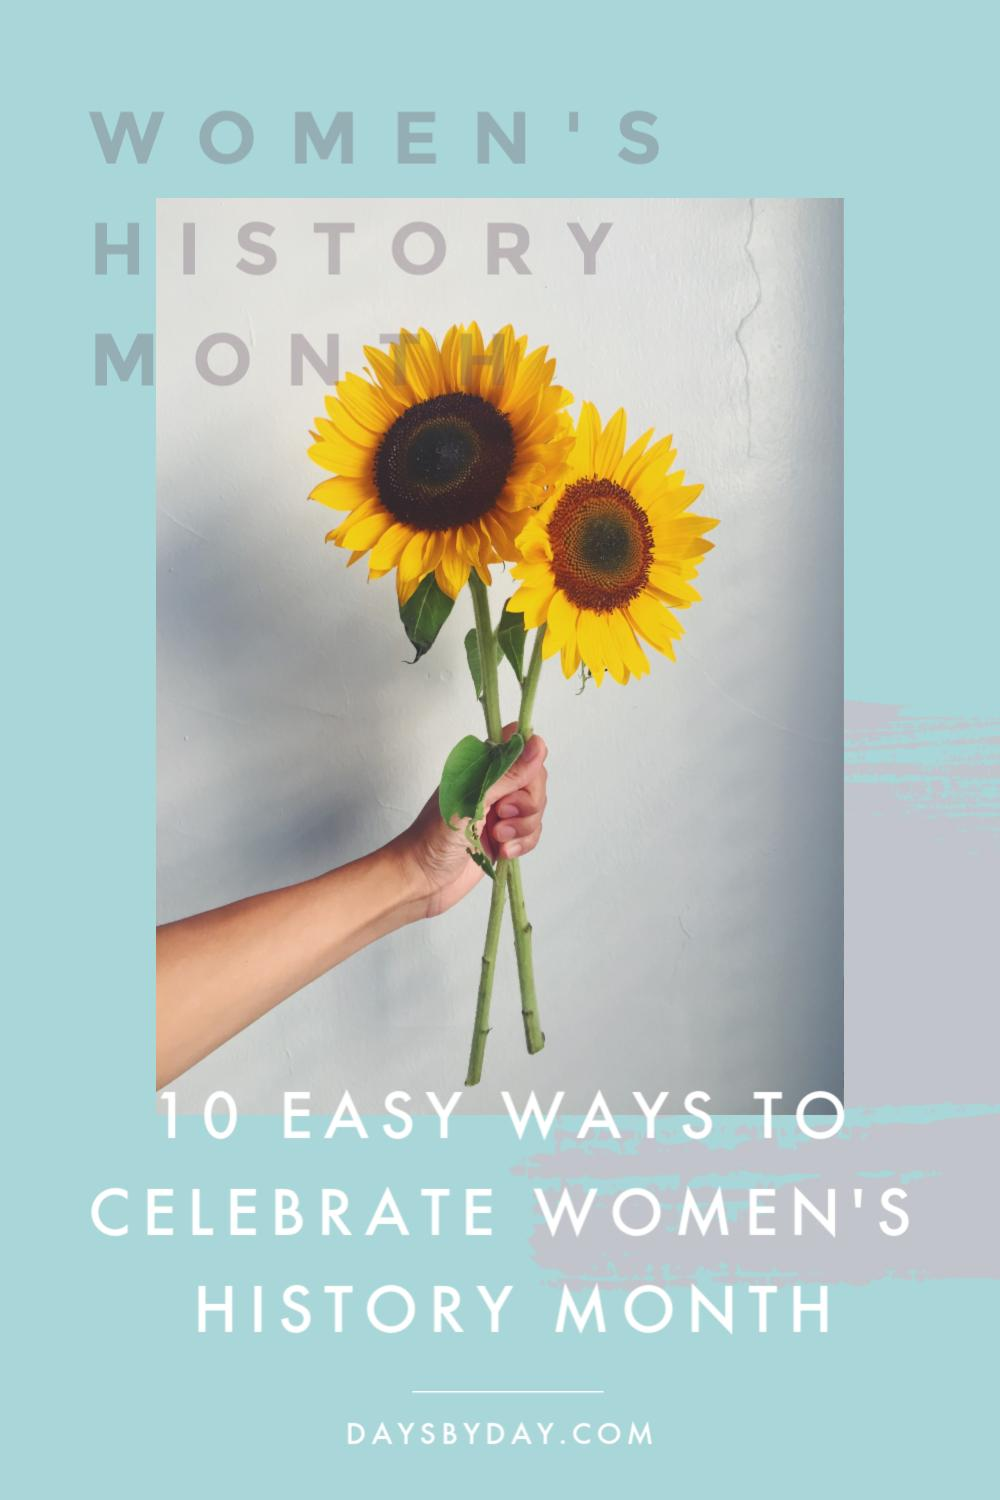 10 Easy Ways to Celebrate Women's History Month